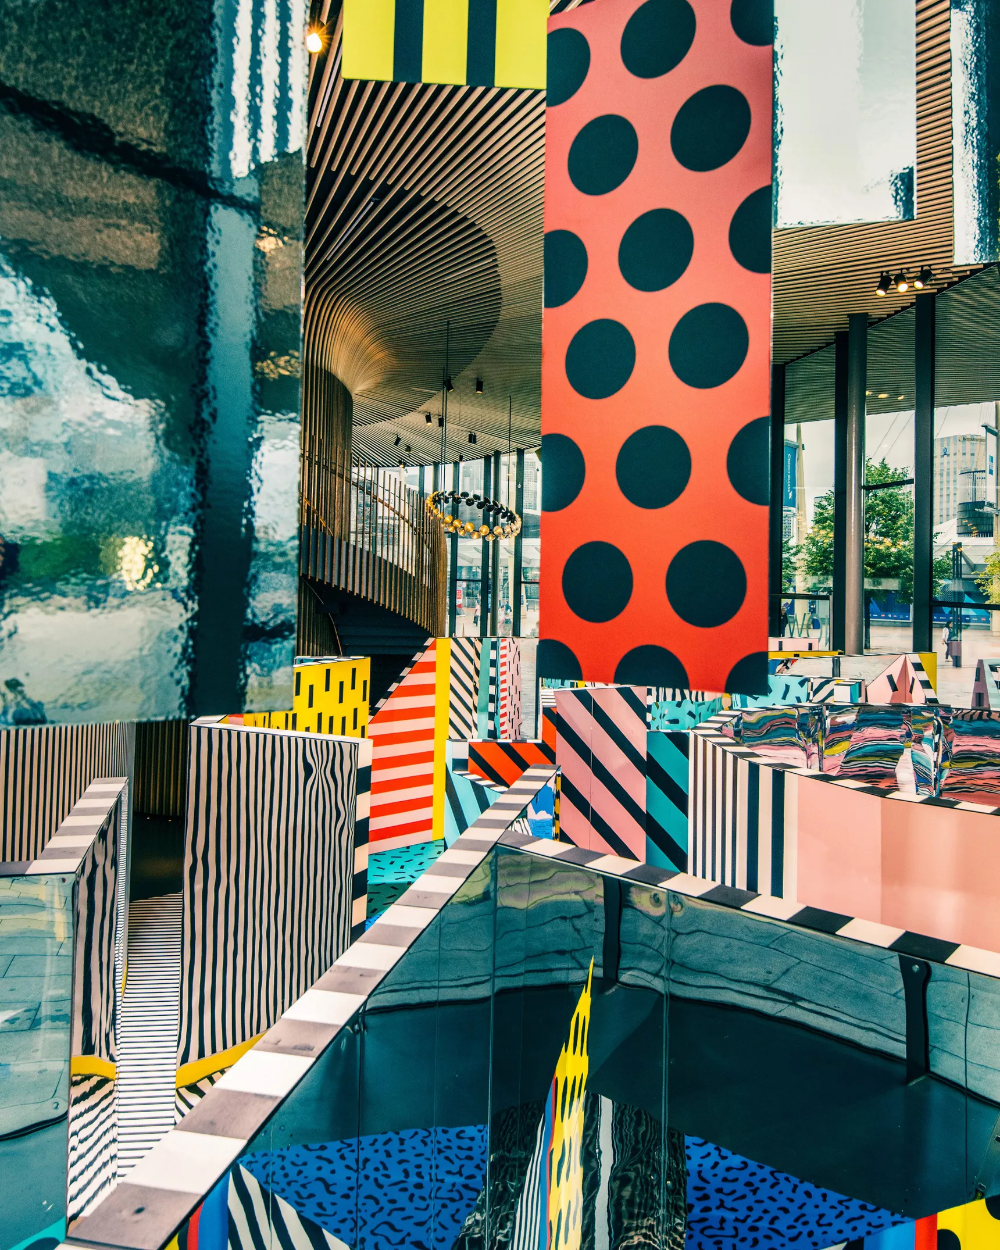 Get lost in a colorful maze in this new London installation